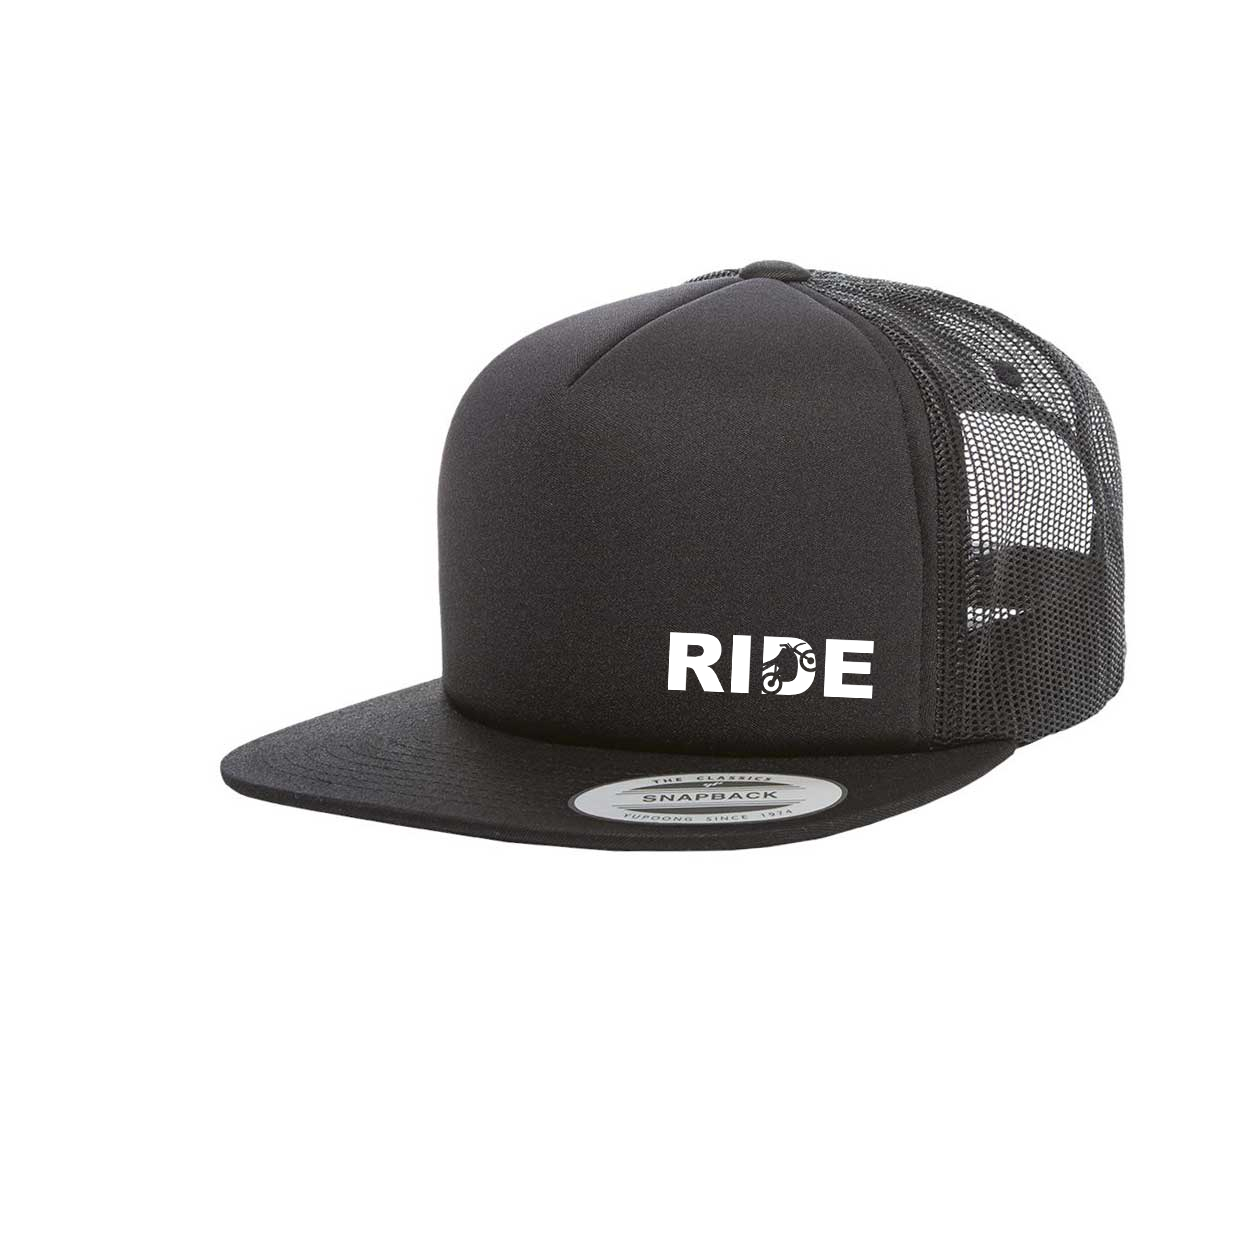 Ride Moto Logo Night Out Premium Foam Flat Brim Snapback Hat Black (White Logo)